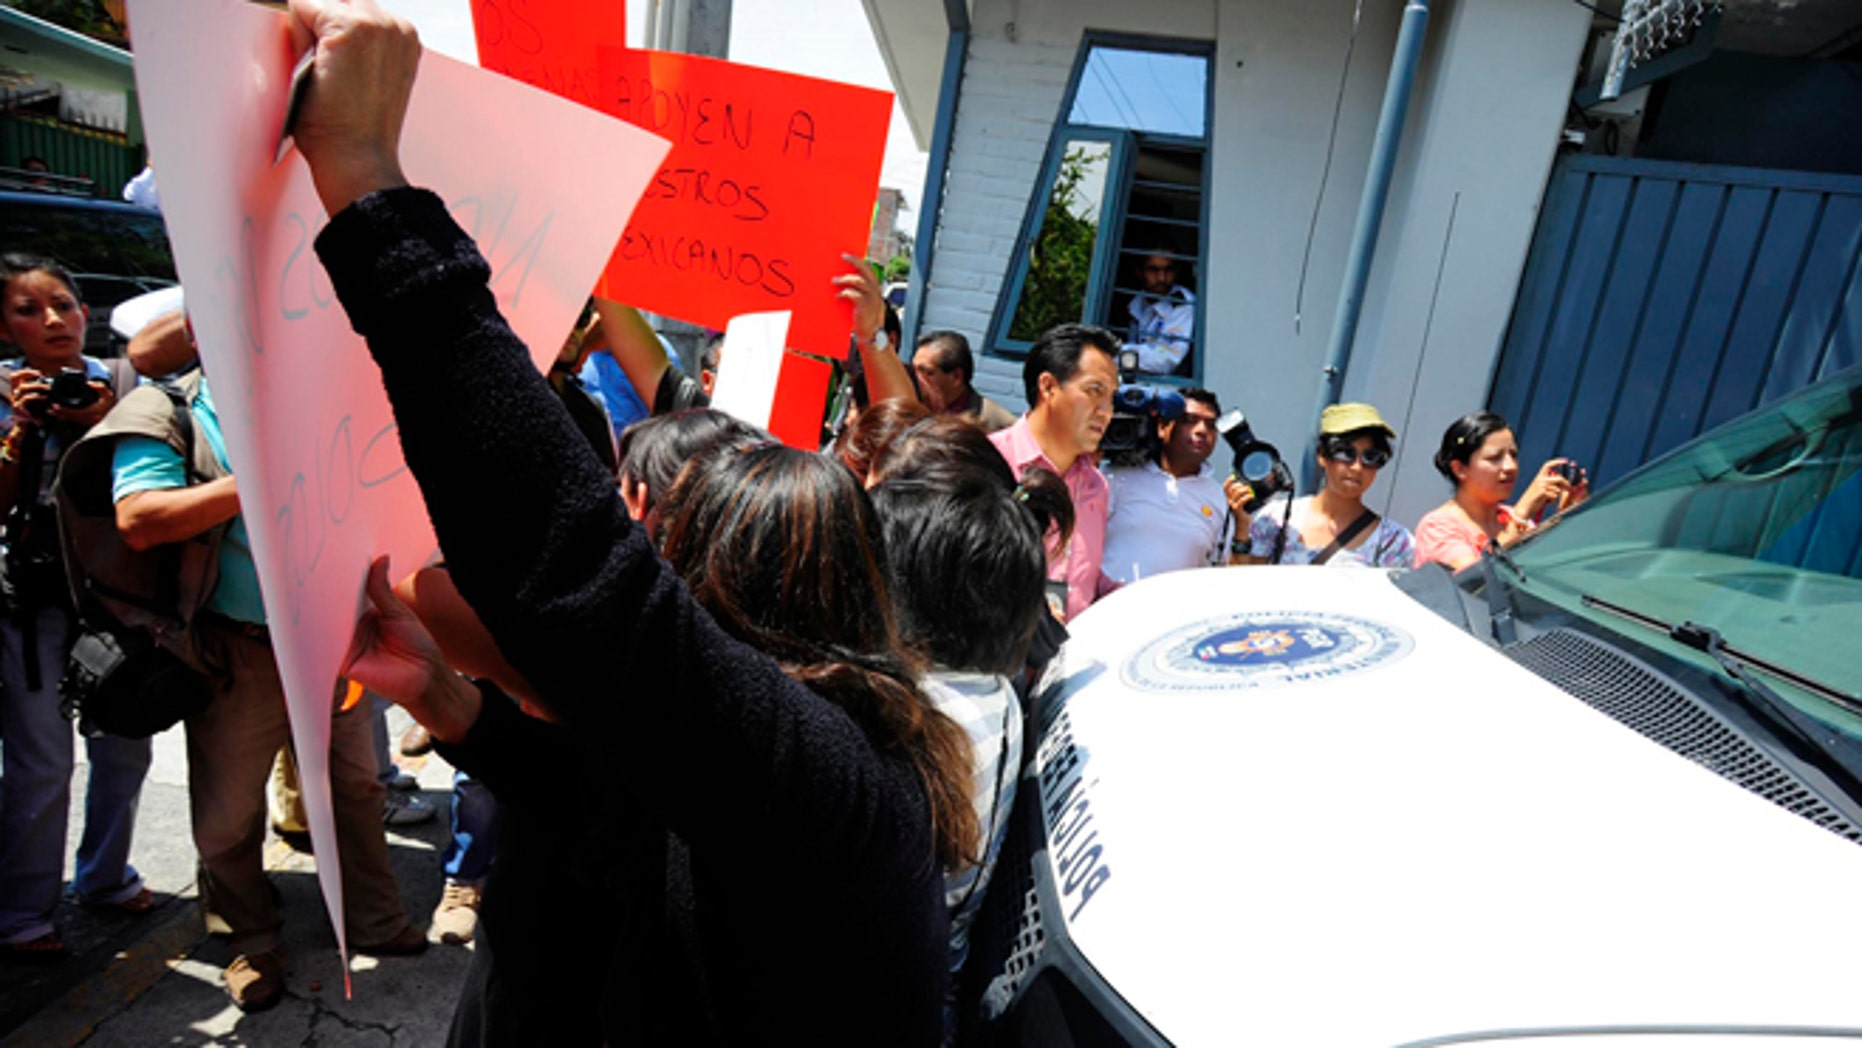 Relatives of the federal policemen involved in last week's shooting against a U.S. embassy vehicle try to block the exit of a van carrying the officers to a federal detention center outside of the Attorney General's office in the city of Cuernavaca, Mexico, Monday Aug. 27, 2012. A judge ruled Monday that the 12 police officers accused of opening fire on a U.S. embassy vehicle and wounding two embassy employees should remain in detention in an incident that has roiled U.S./Mexican relations and drawn fresh attention to serious problems inside Mexico's premier law-enforcement agency. (AP Photo/Tony Rivera)